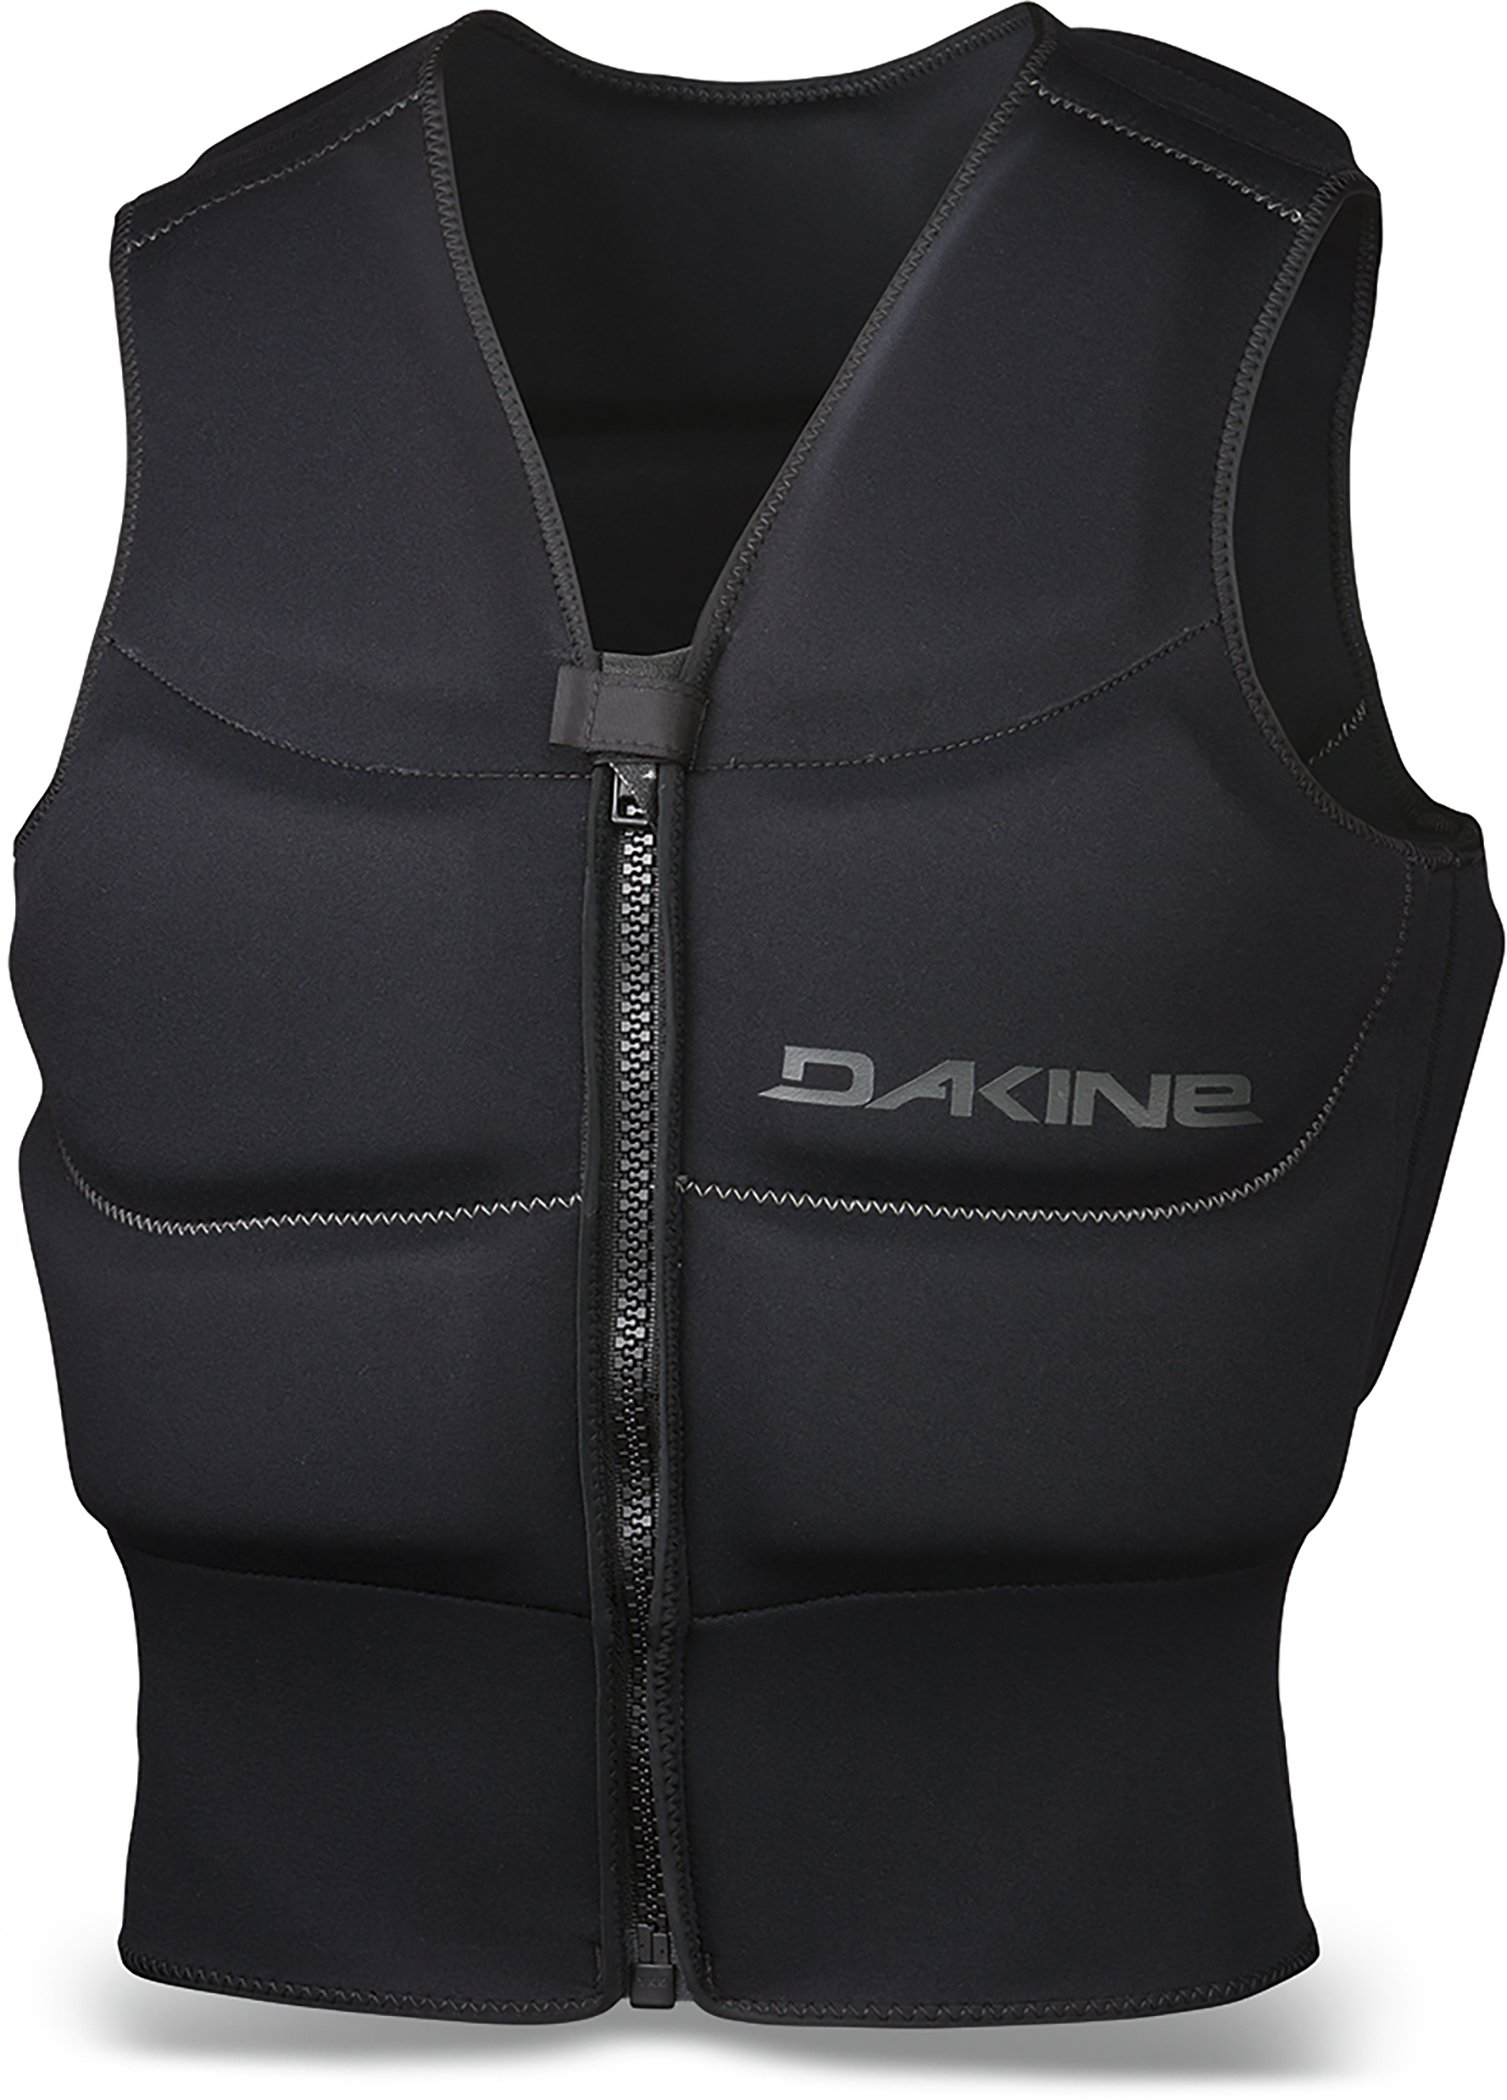 Dakine Unisex Surface Zip Sport Neoprene Vest S BLACK